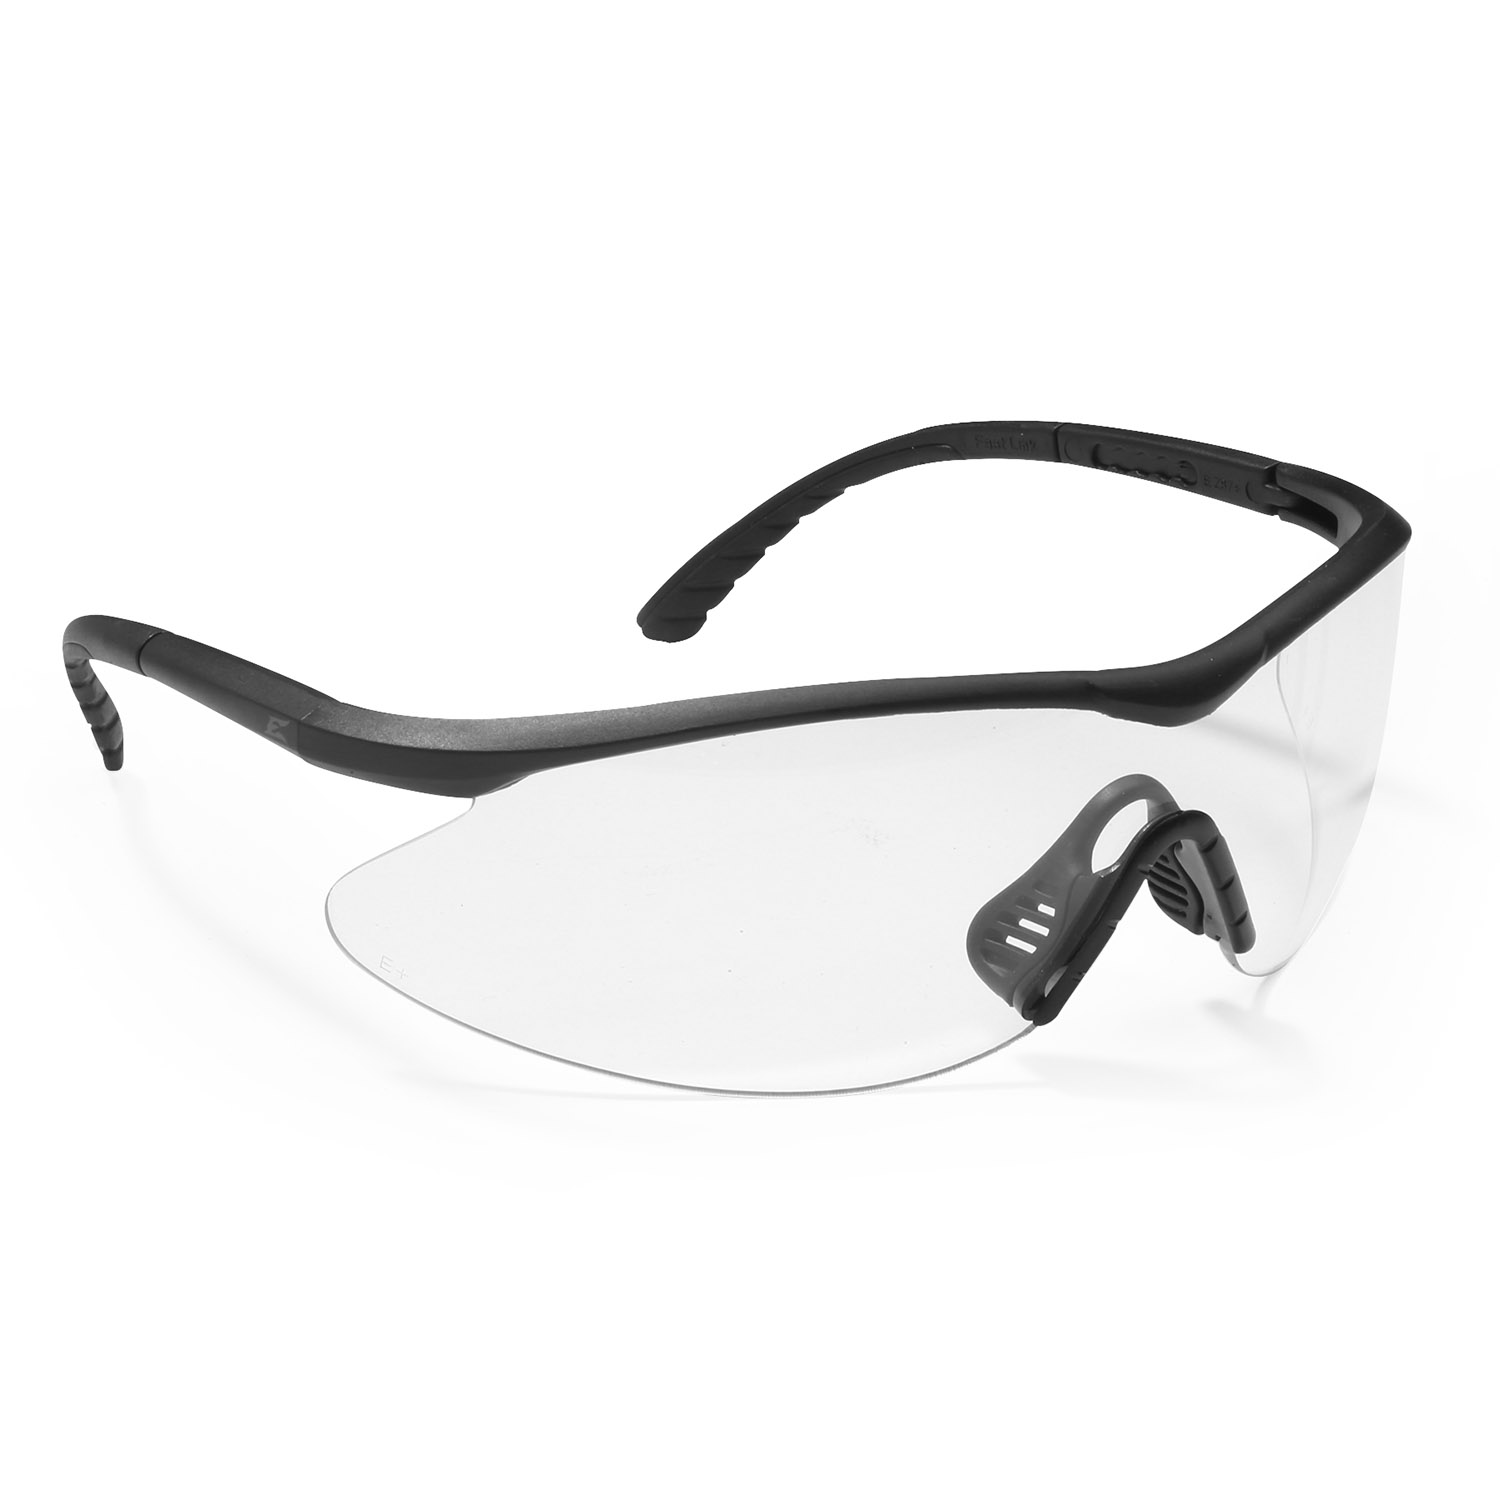 Edge Eyewear Fastlink Tactical